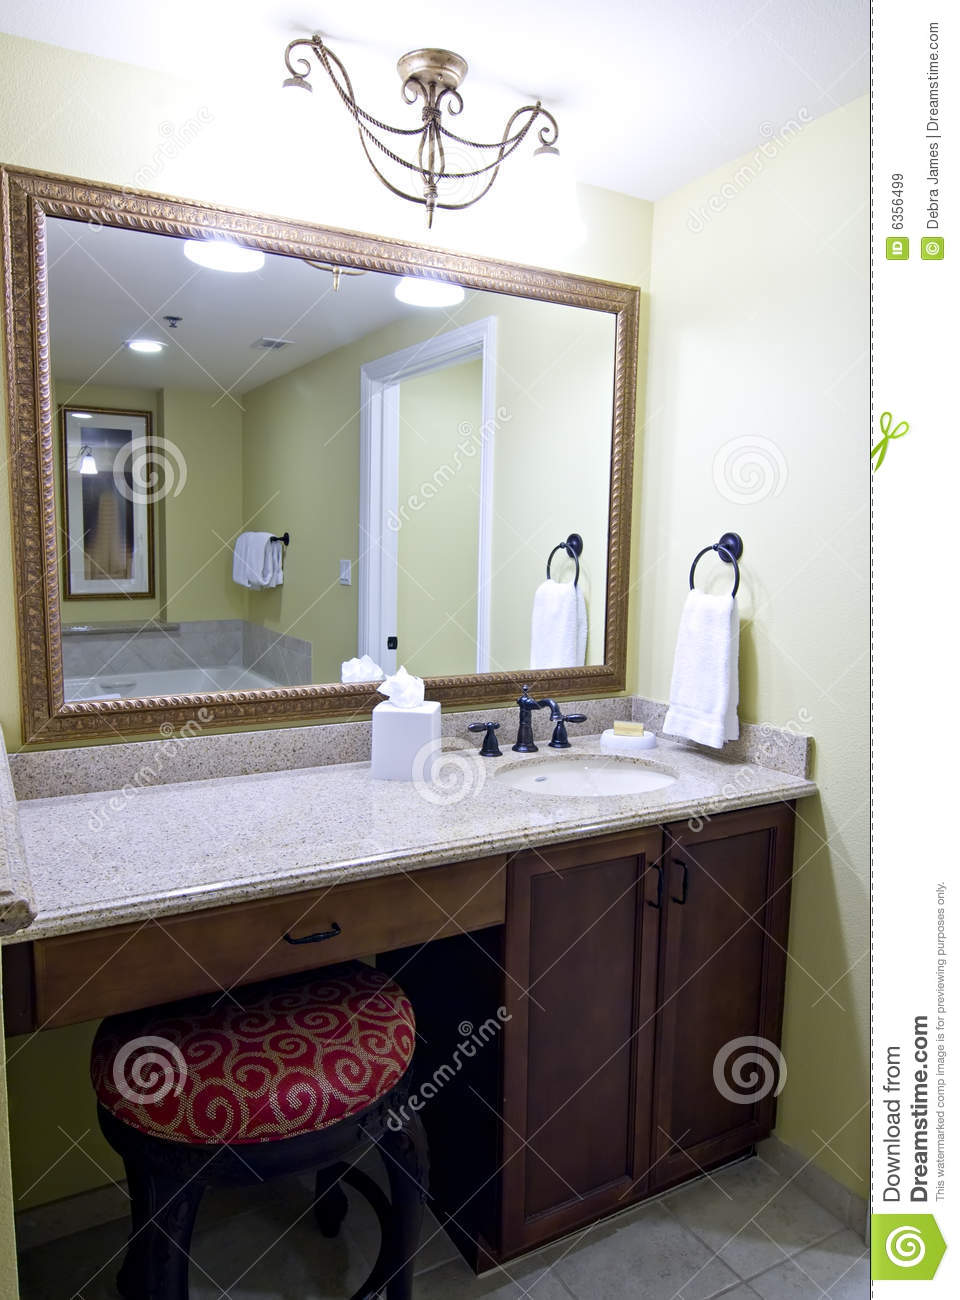 Mirror above bathroom vanity stock image image of - Round mirror over bathroom vanity ...